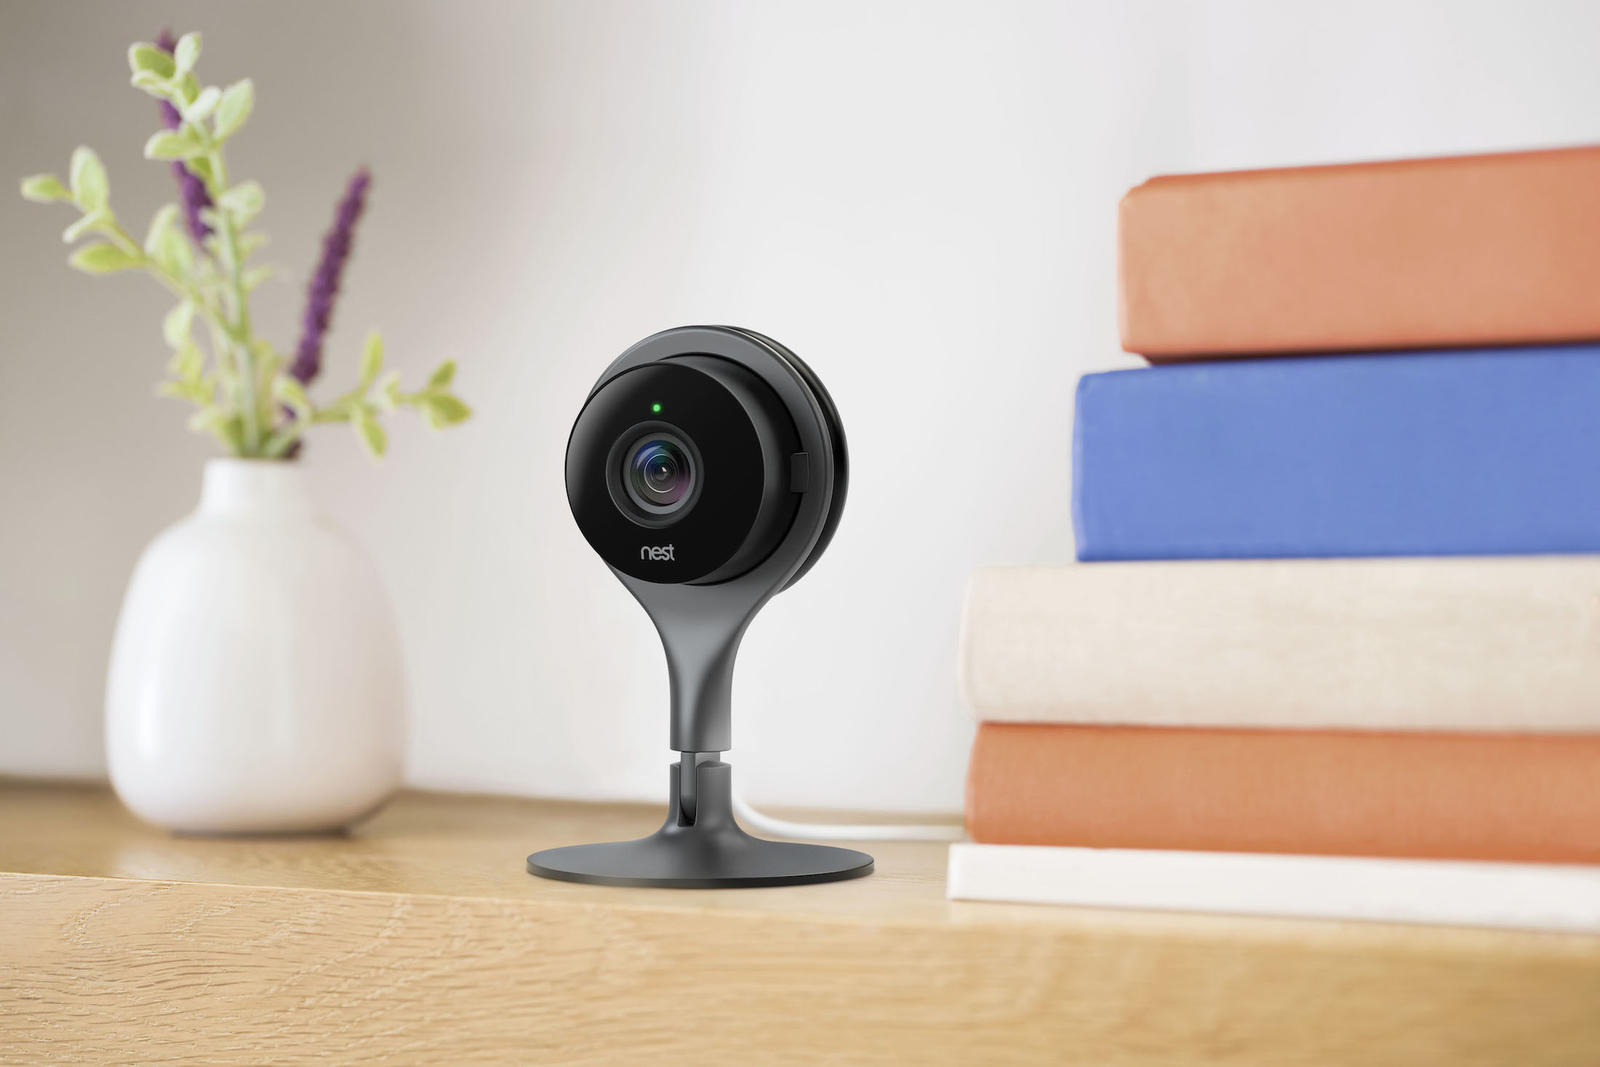 Nest camera hack highlights the need to practice better password